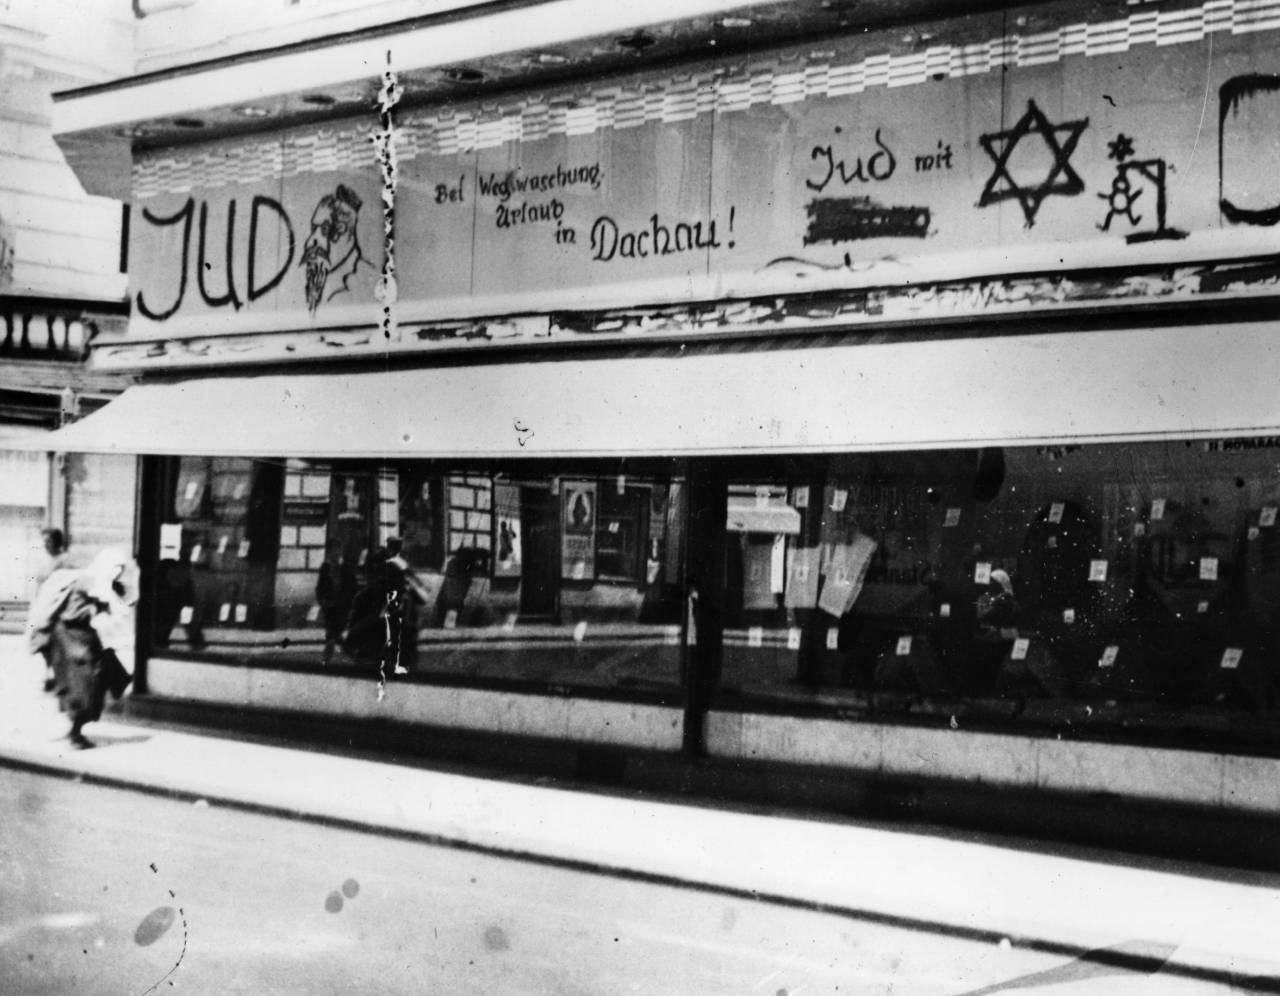 A tailor's shop in the Jewish quarter of Vienna defaced with anti-Jewish slogans by Nazi hooligans. The graffiti carries a warning that the owner will be sent to the concentration camp in Dachau if the obscenities are removed.   (Photo by Keystone/Getty Images)